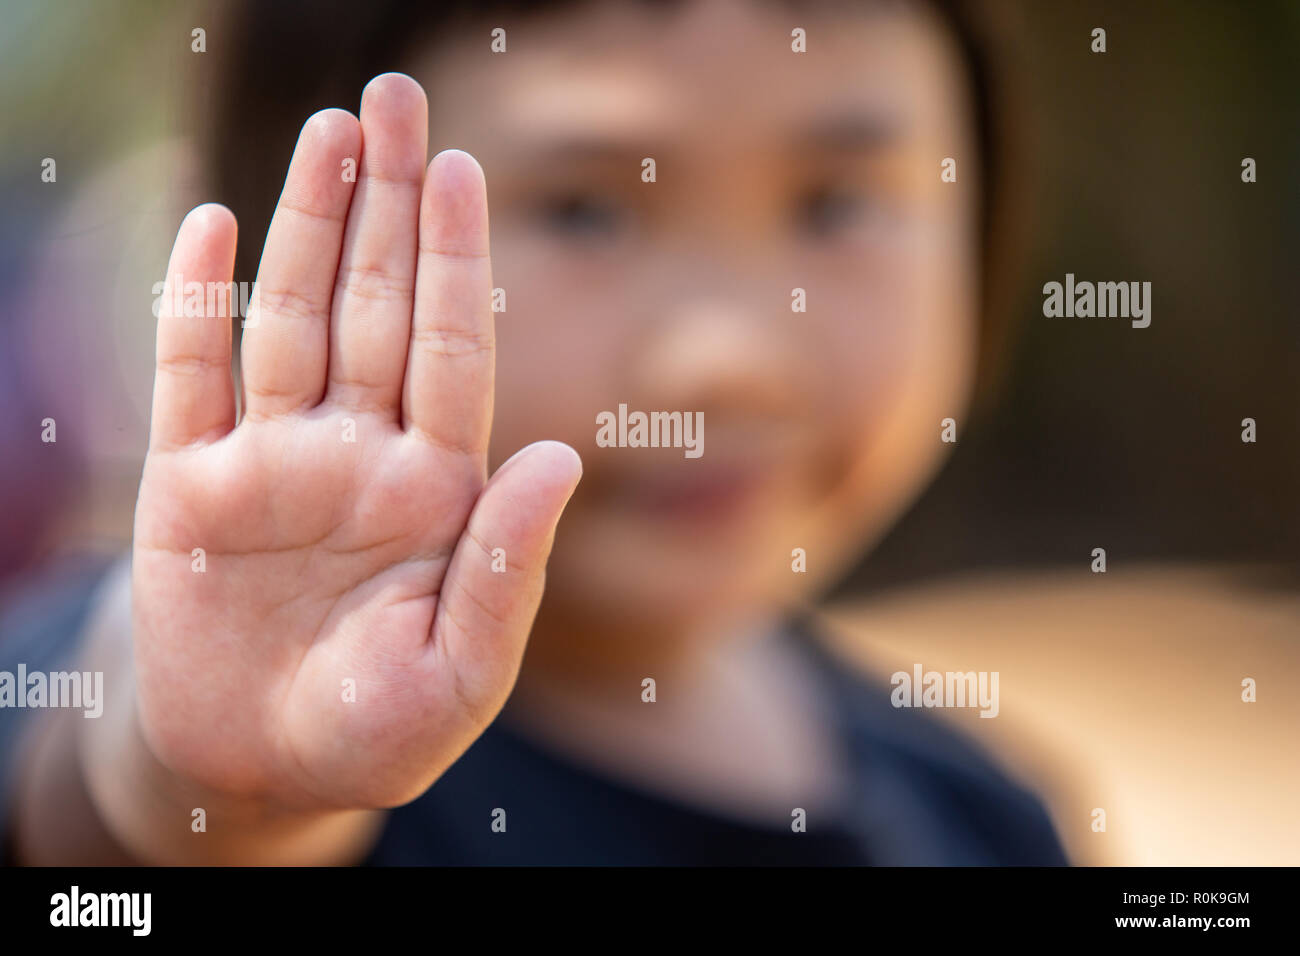 Stop harassment child and stop violence abuse in child. Hand stop no. Stock Photo